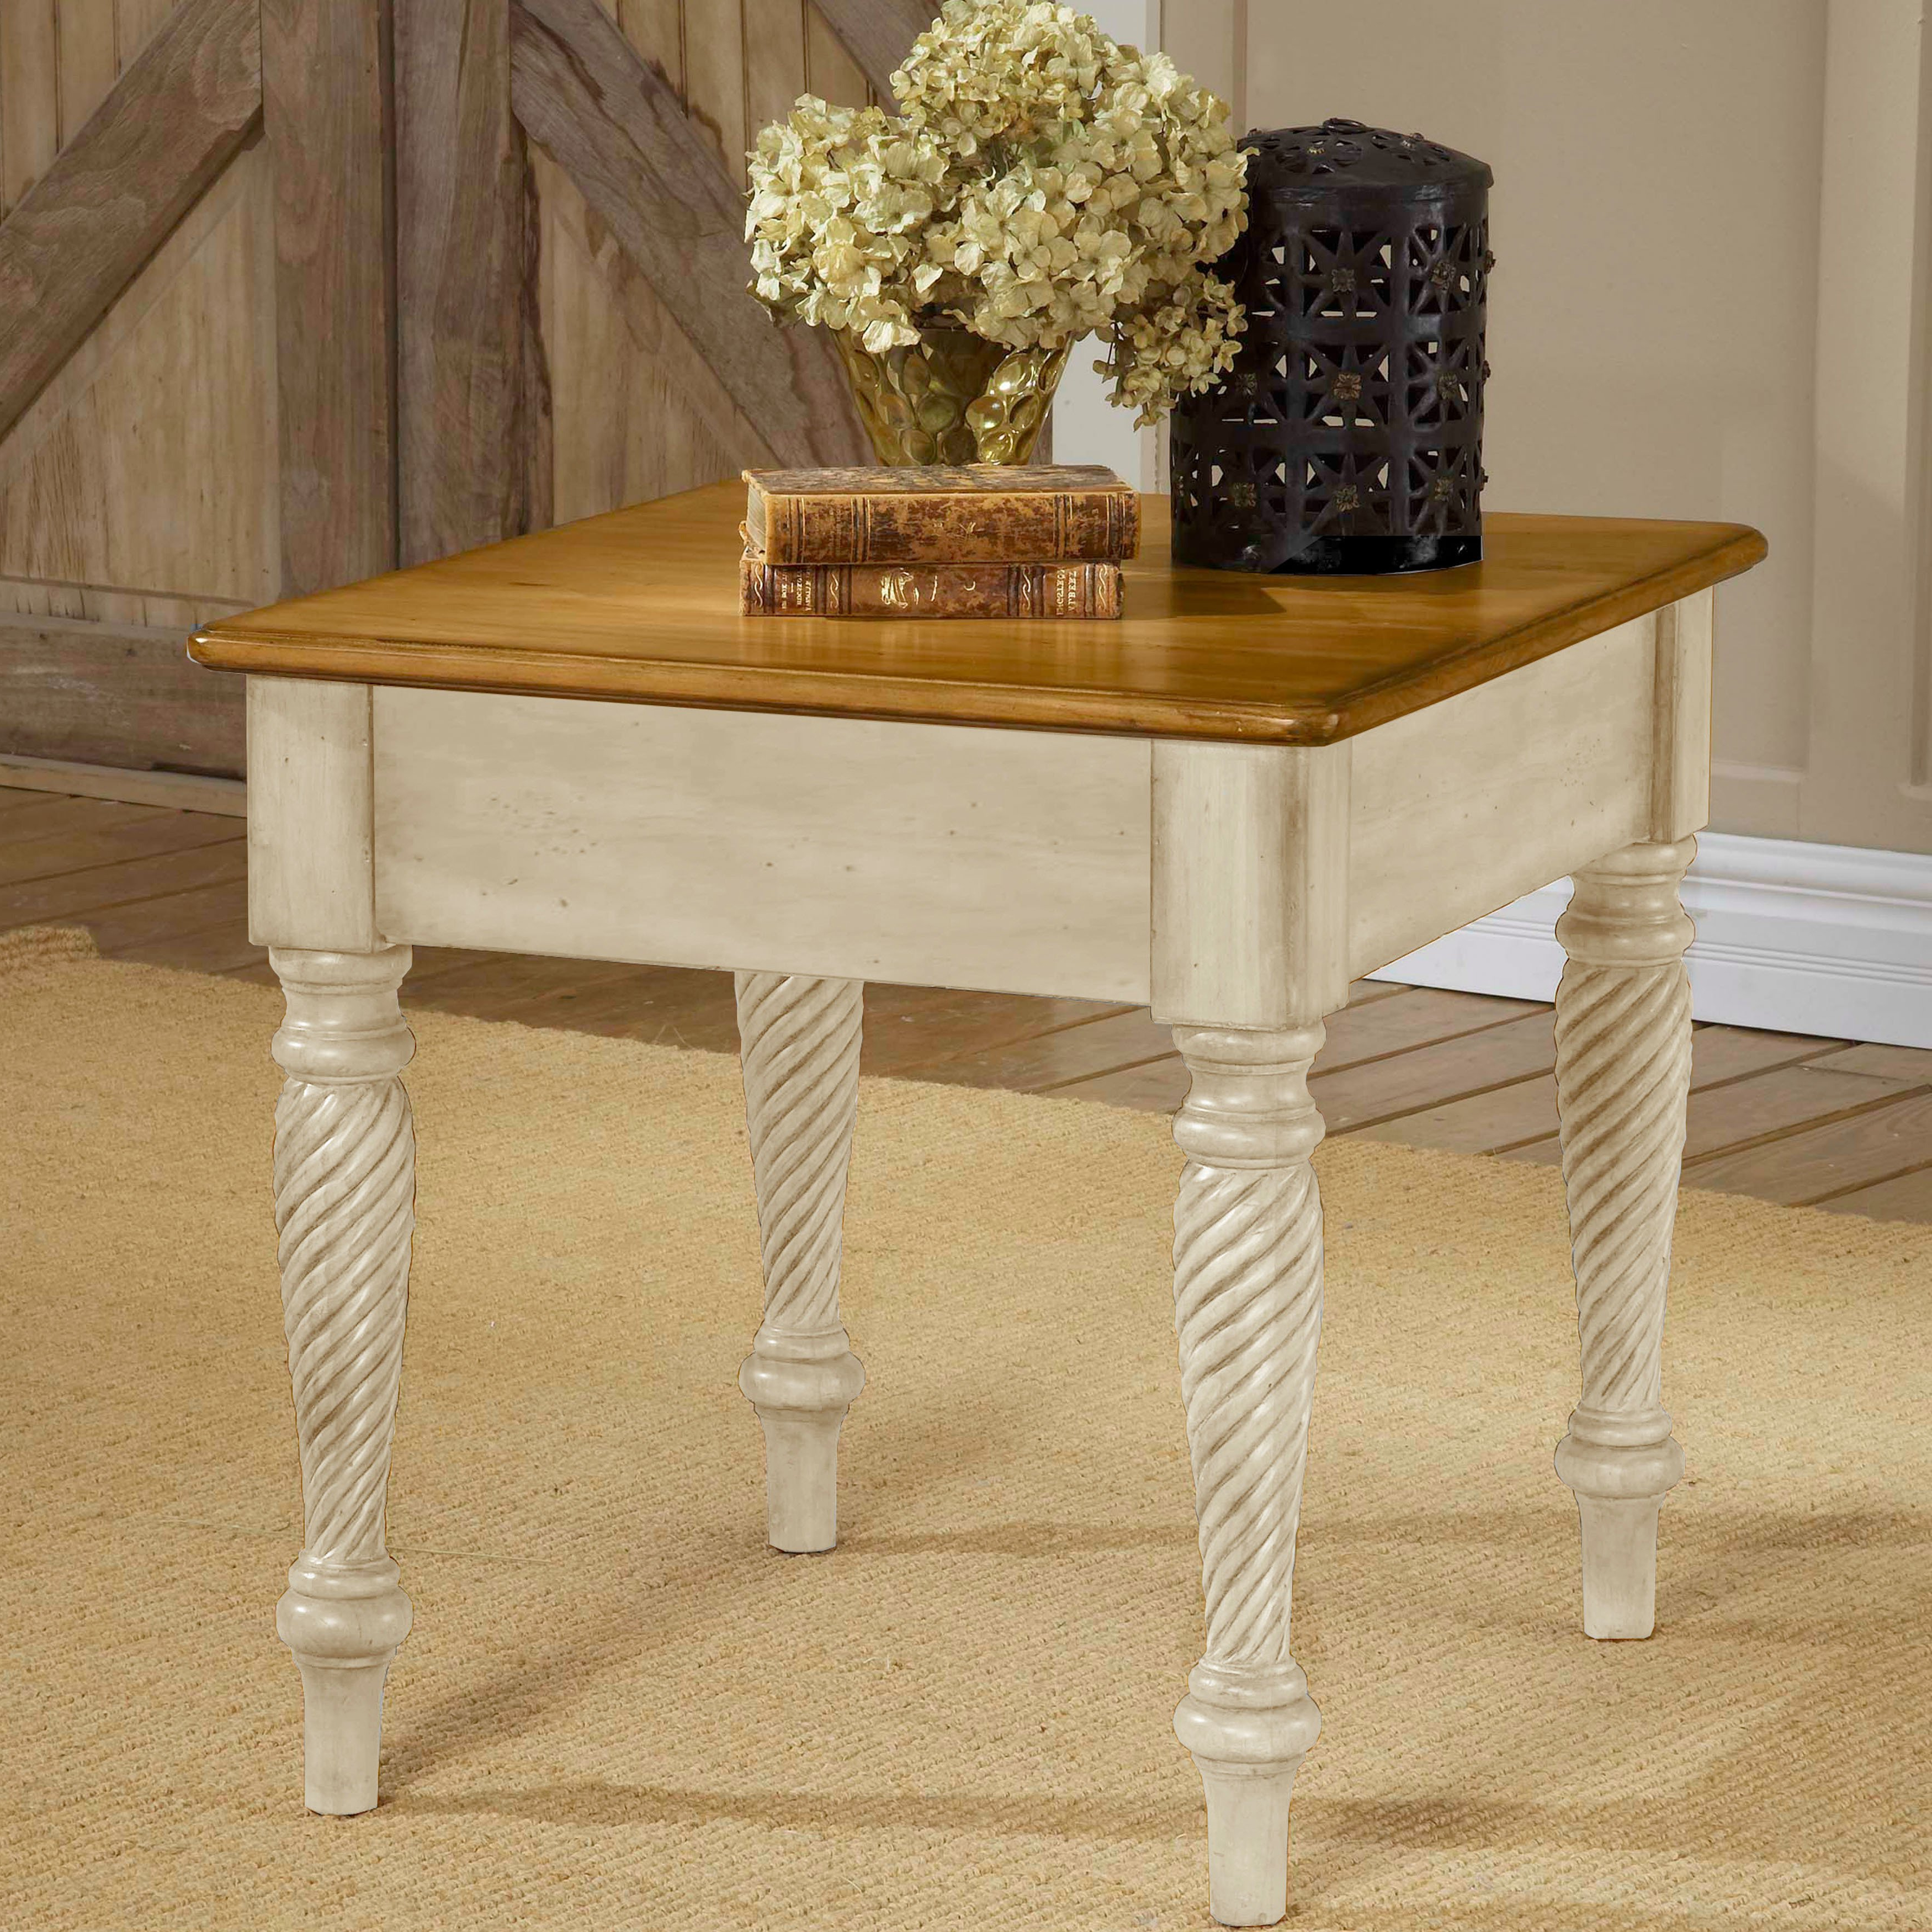 Latest Hillsdale Furniture Wilshire Antique White End Table – Free Shipping Pertaining To Wilshire Cocktail Tables (Gallery 16 of 20)